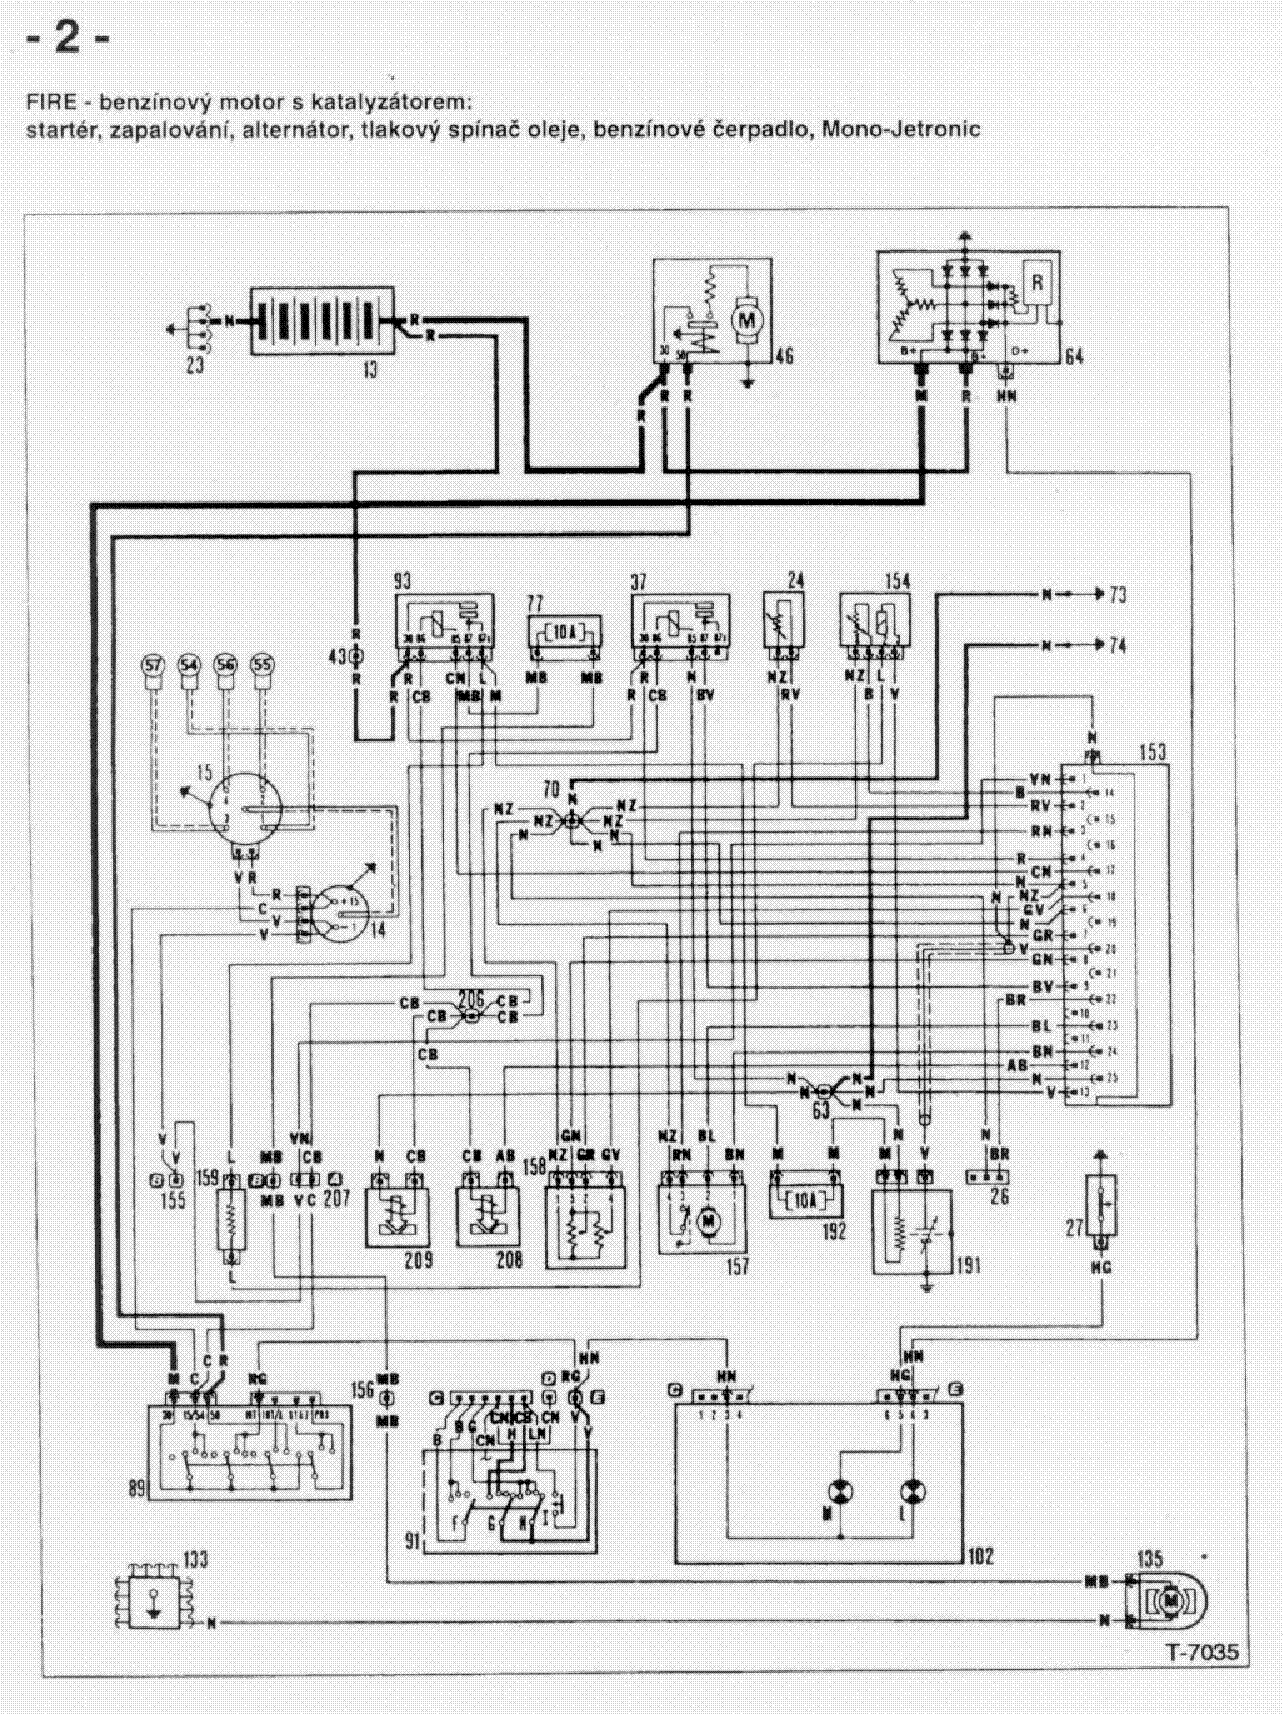 hight resolution of fiat uno 1100 wiring diagram wiring diagram schematic fiat punto electrical wiring diagram fiat uno electrical wiring diagram